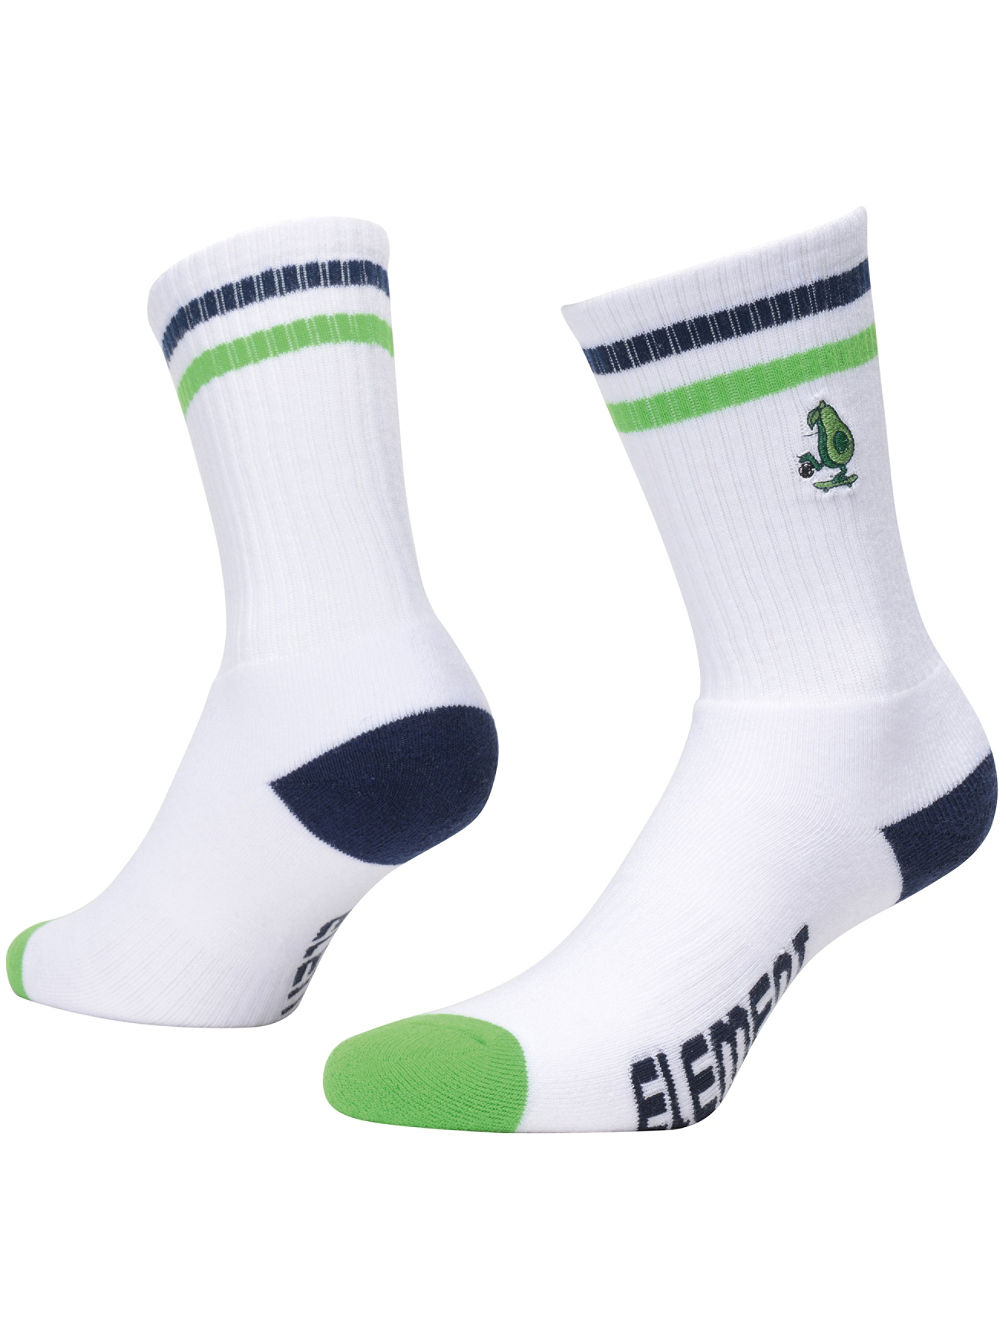 Yawye High Rise A 2 Pack Socks